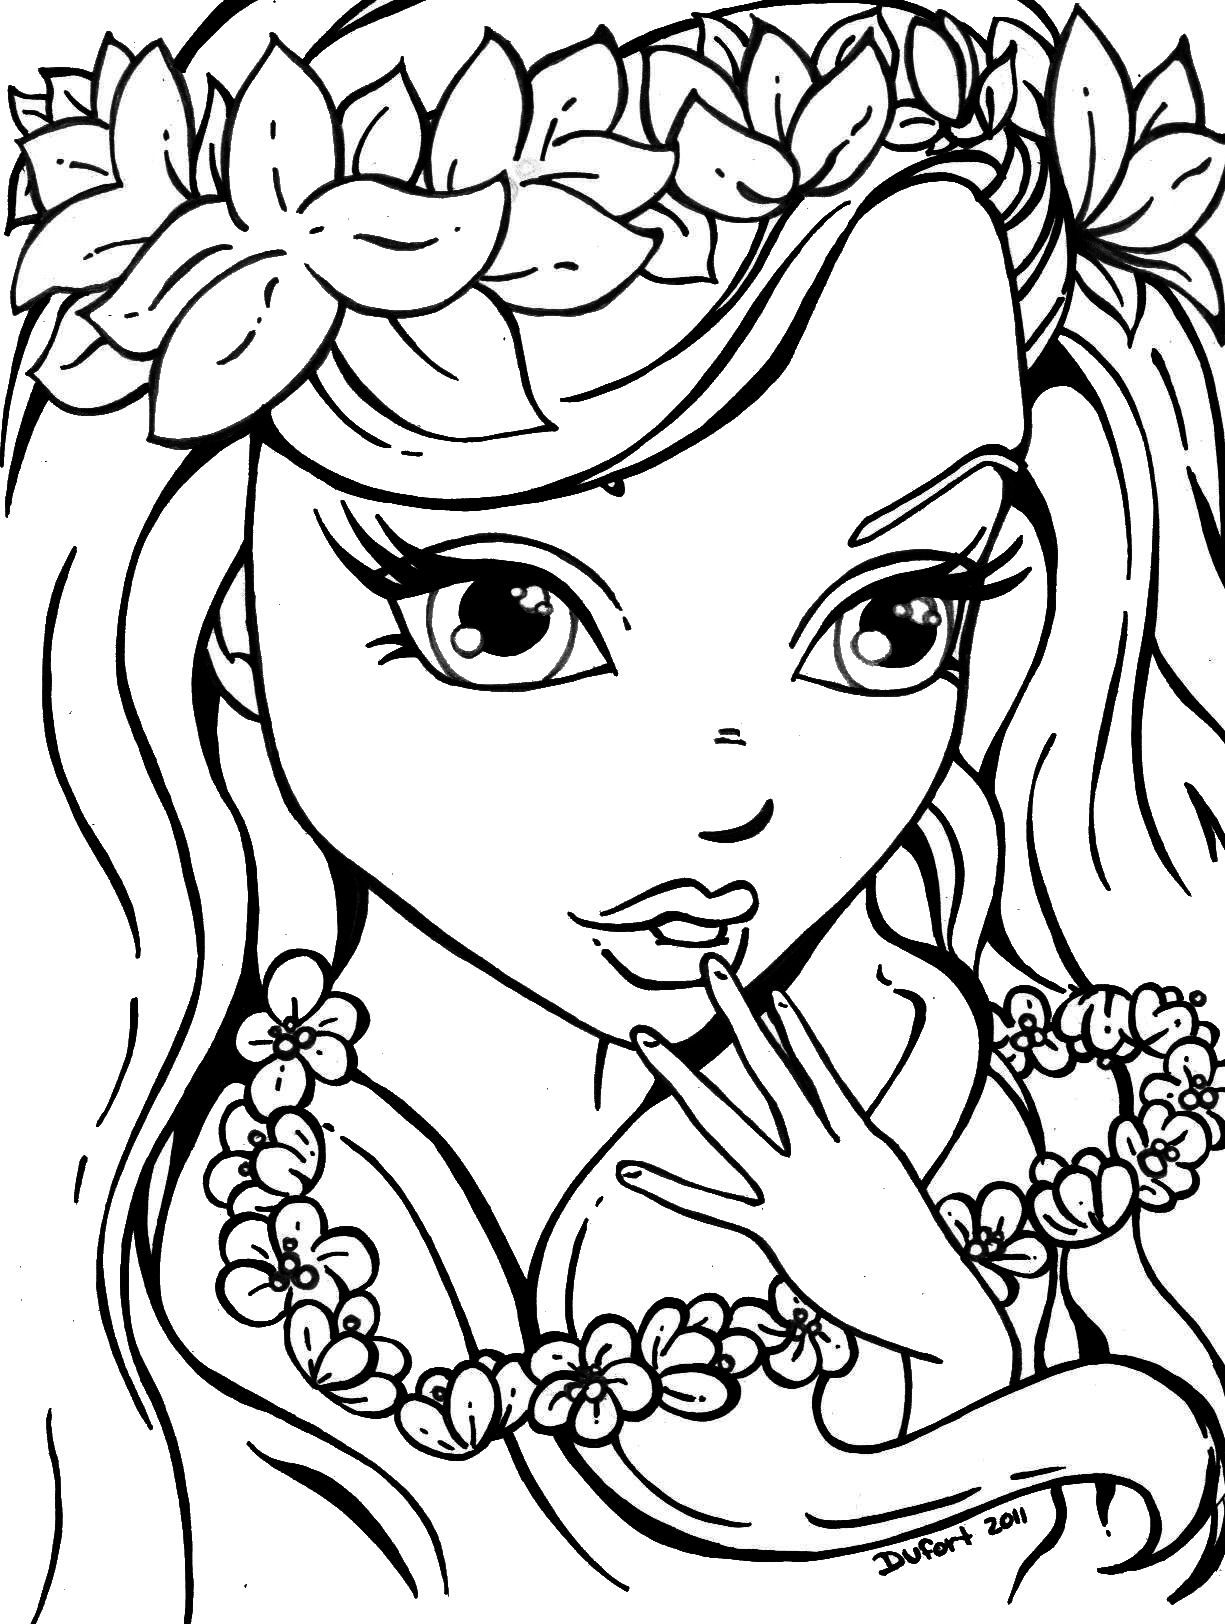 Flowers Girl Stamps Coloring Pages Coloring Pages For Girls